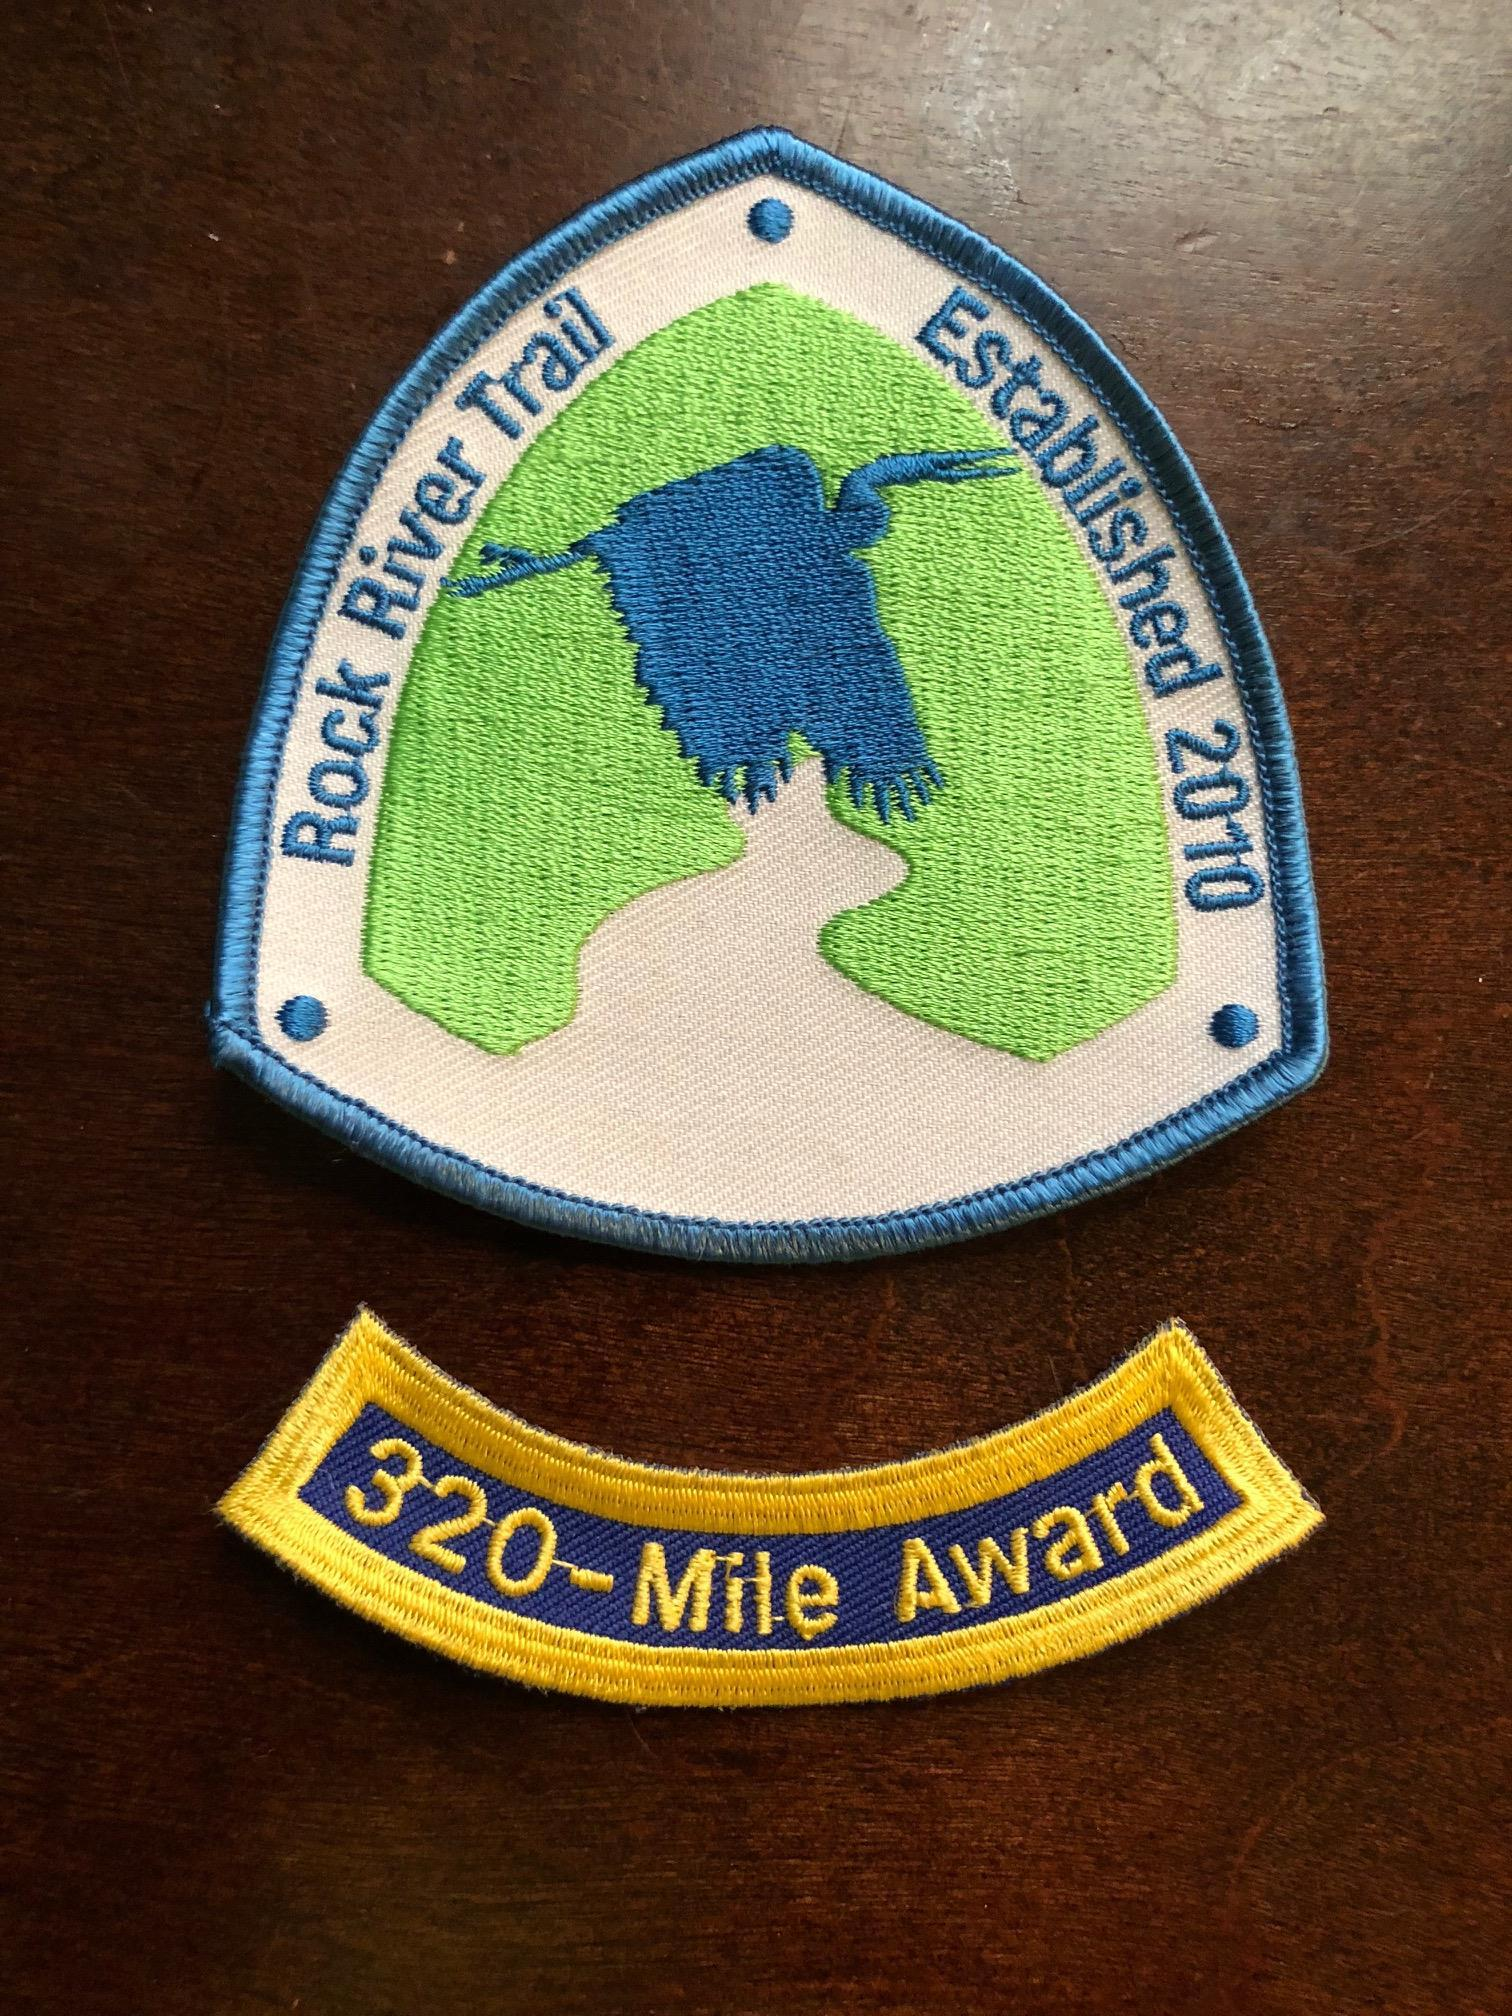 The official Rock River Trail patch with 320-mile rocker (photo courtesy of WNIJ)